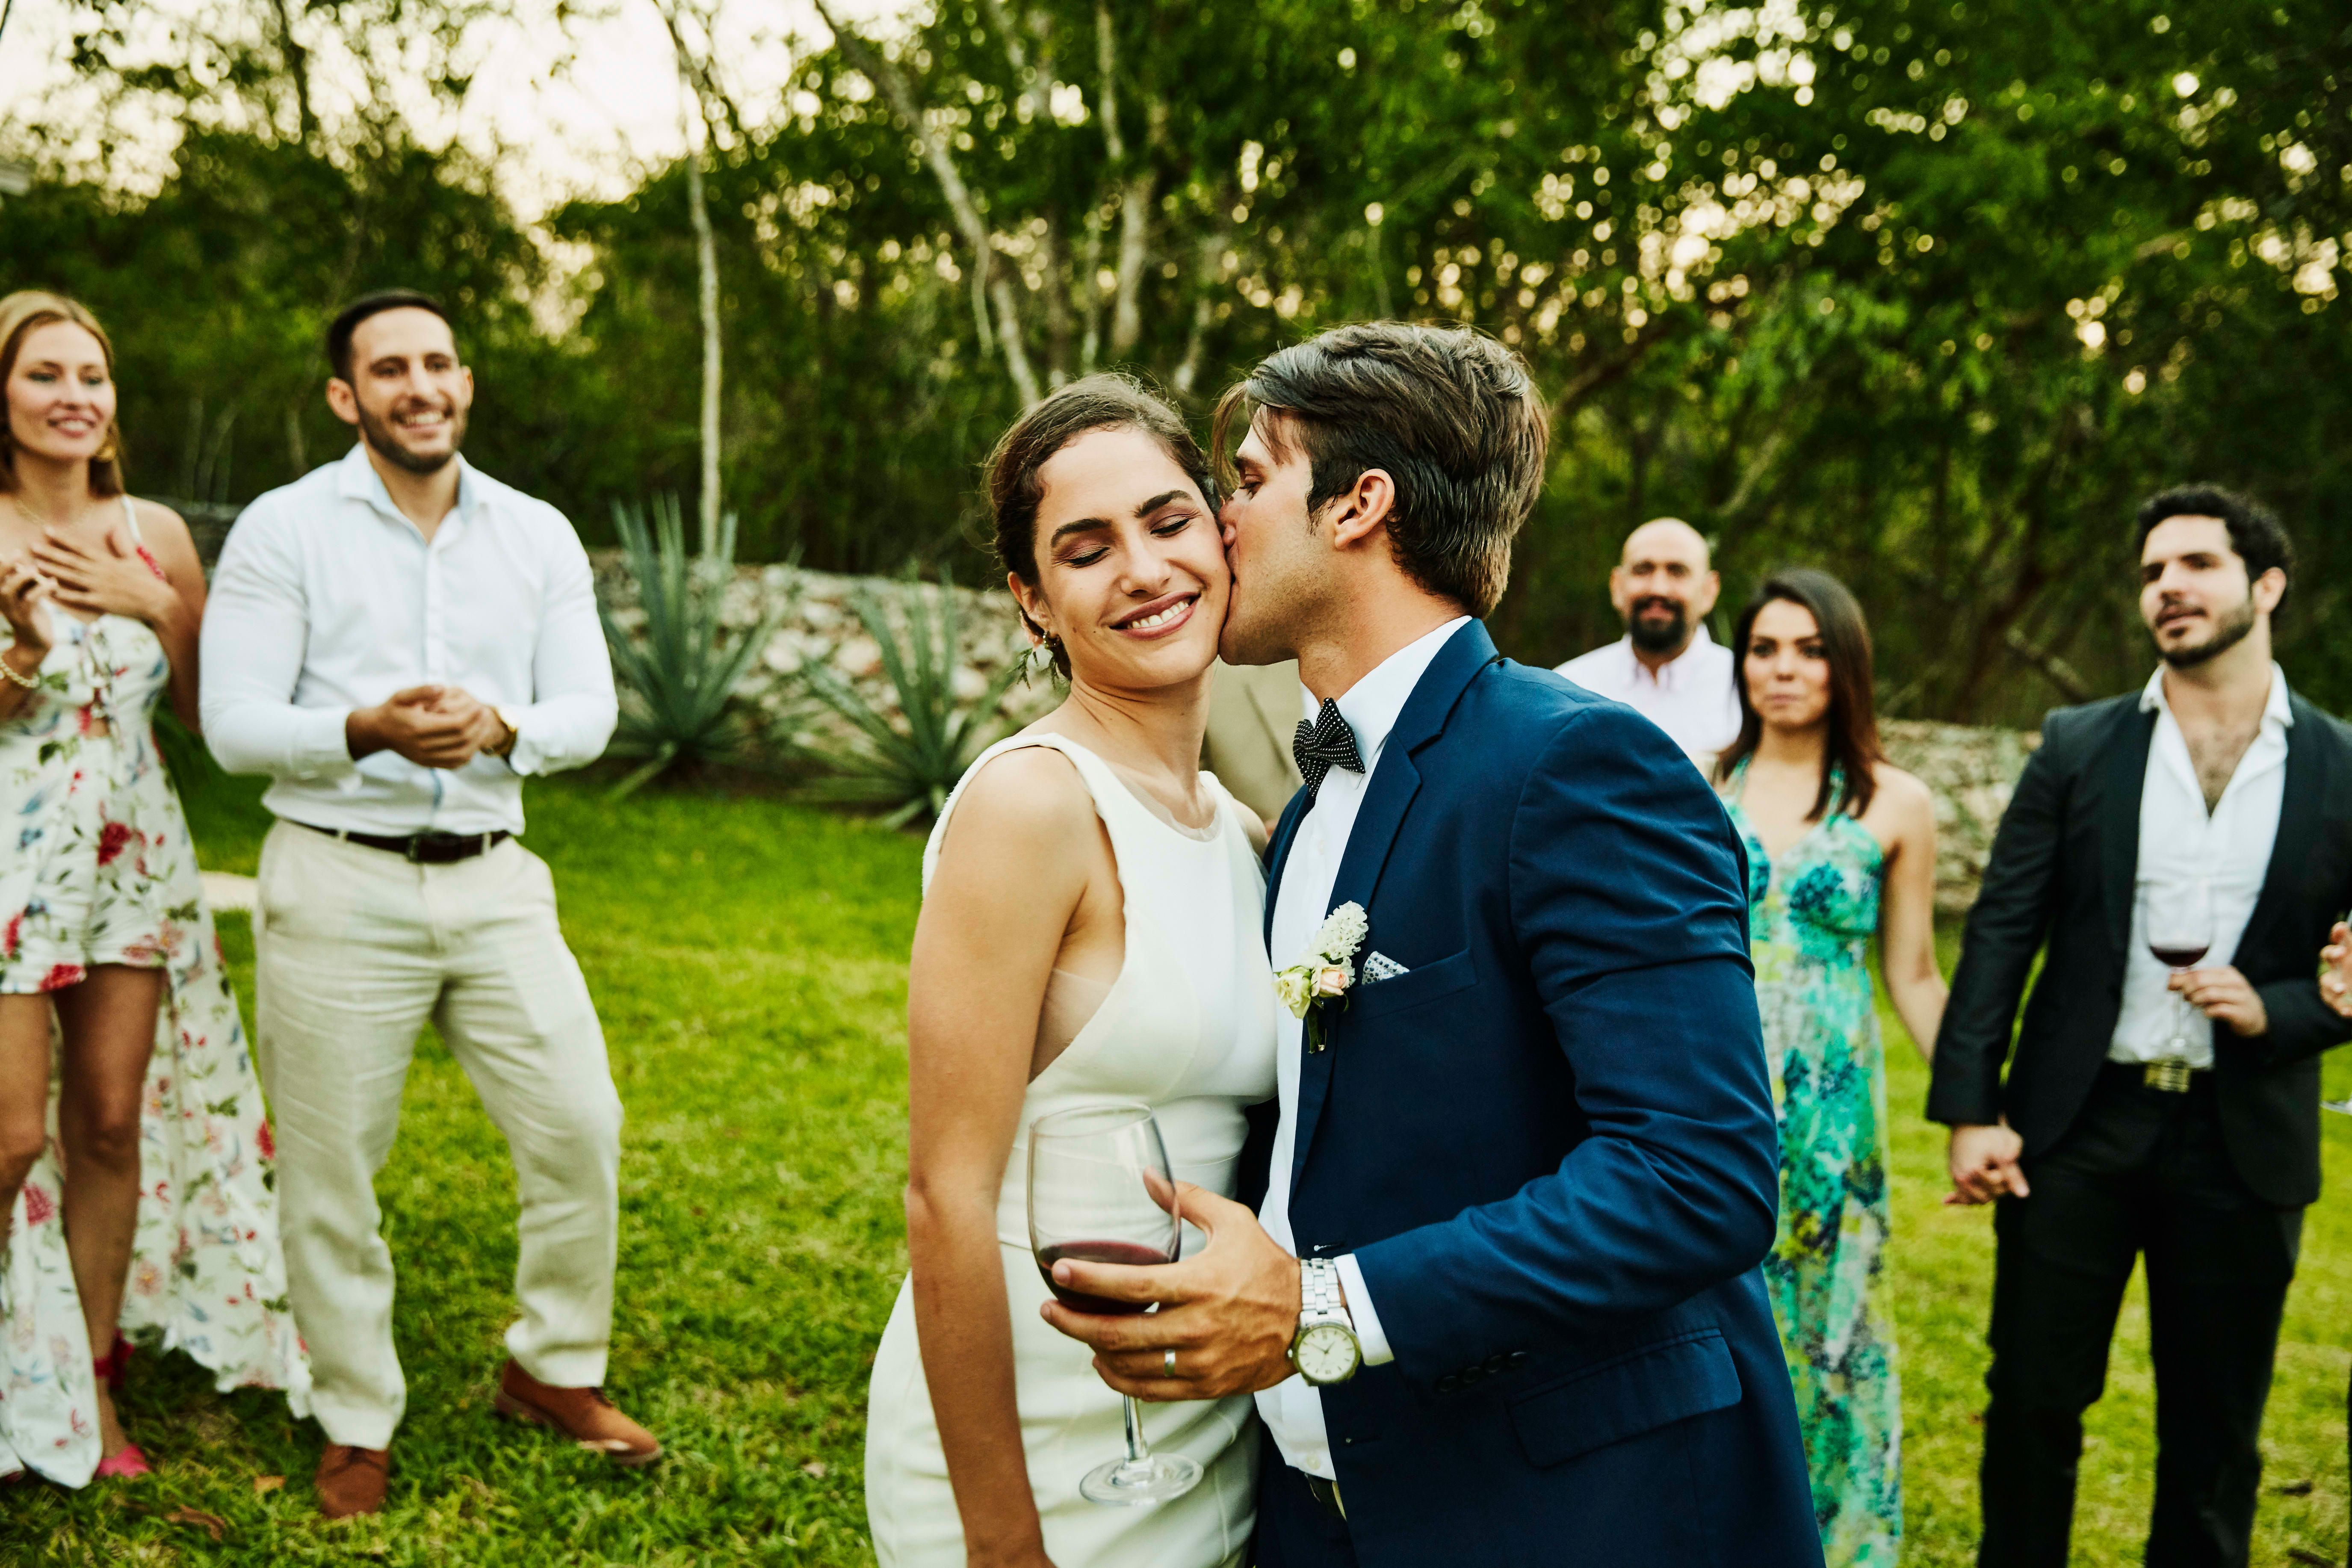 Here's how much the average wedding cost in 2019 in 2020